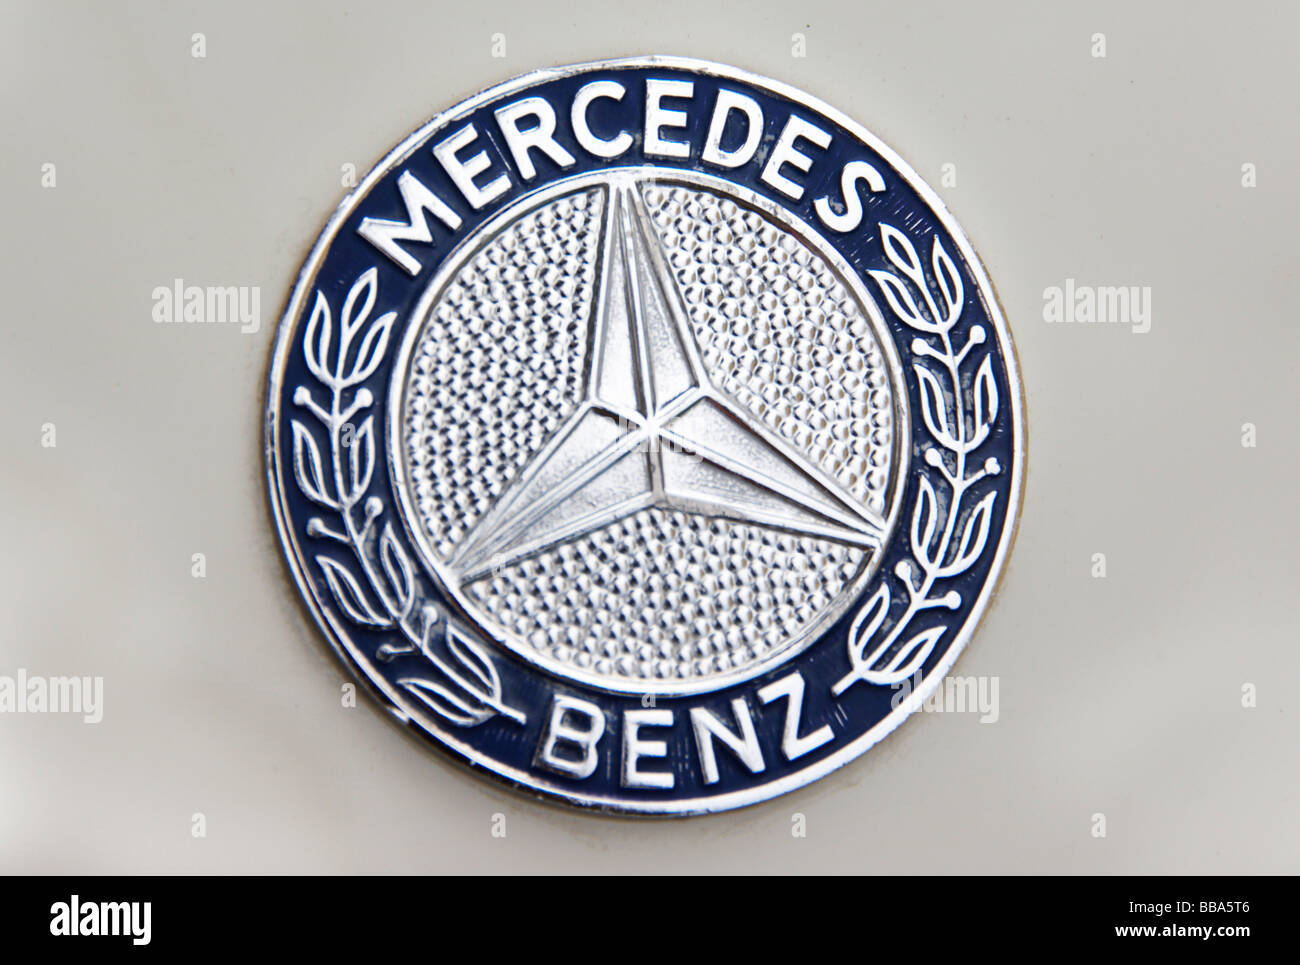 Old Mercedes Benz logo on classic car Stock Photo